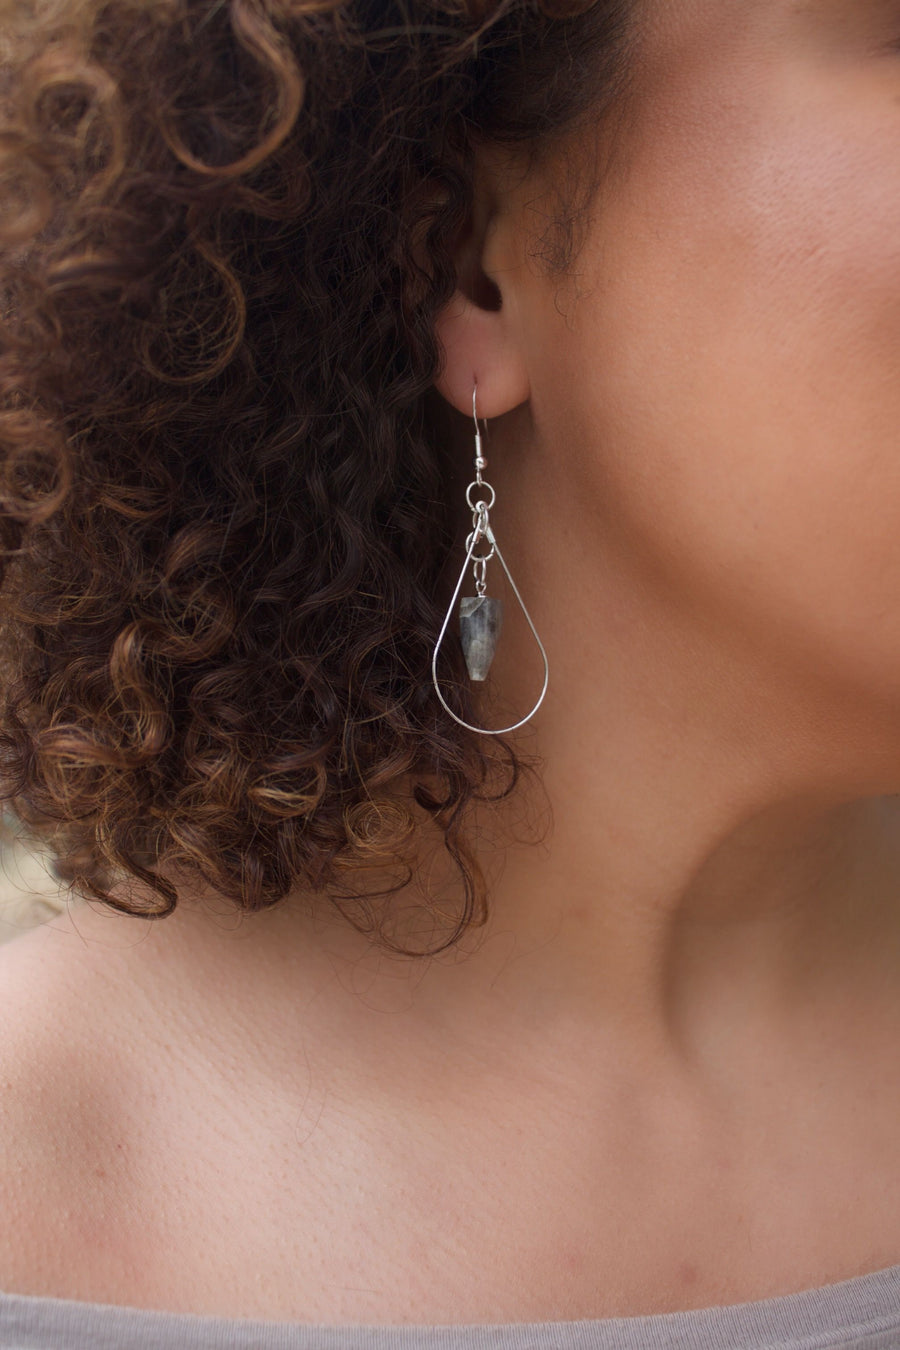 The Jordan Earrings (hover over picture for other options)